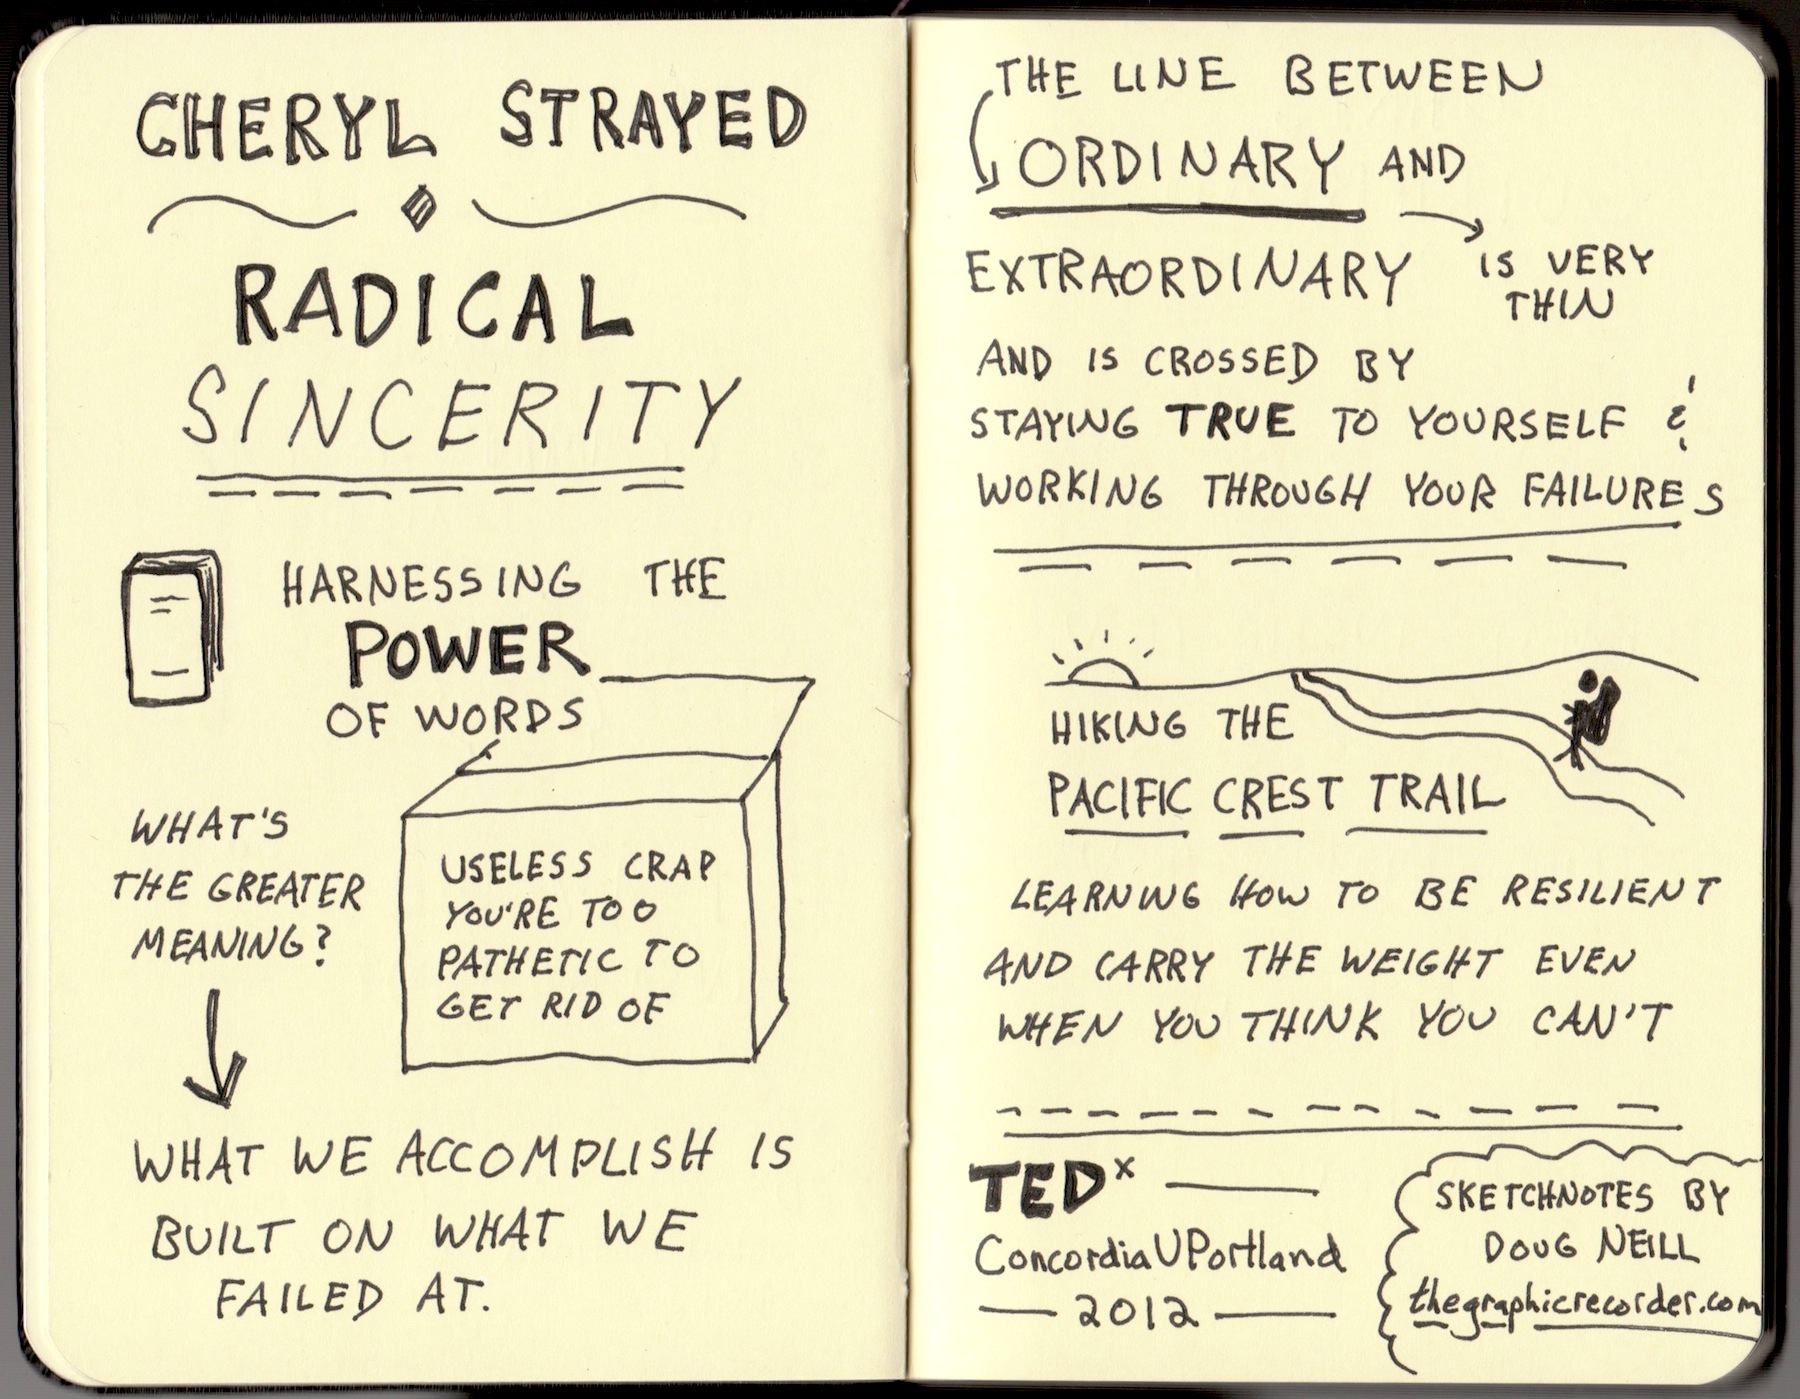 Sketchnotes of Cheryl Strayed 2012 ...